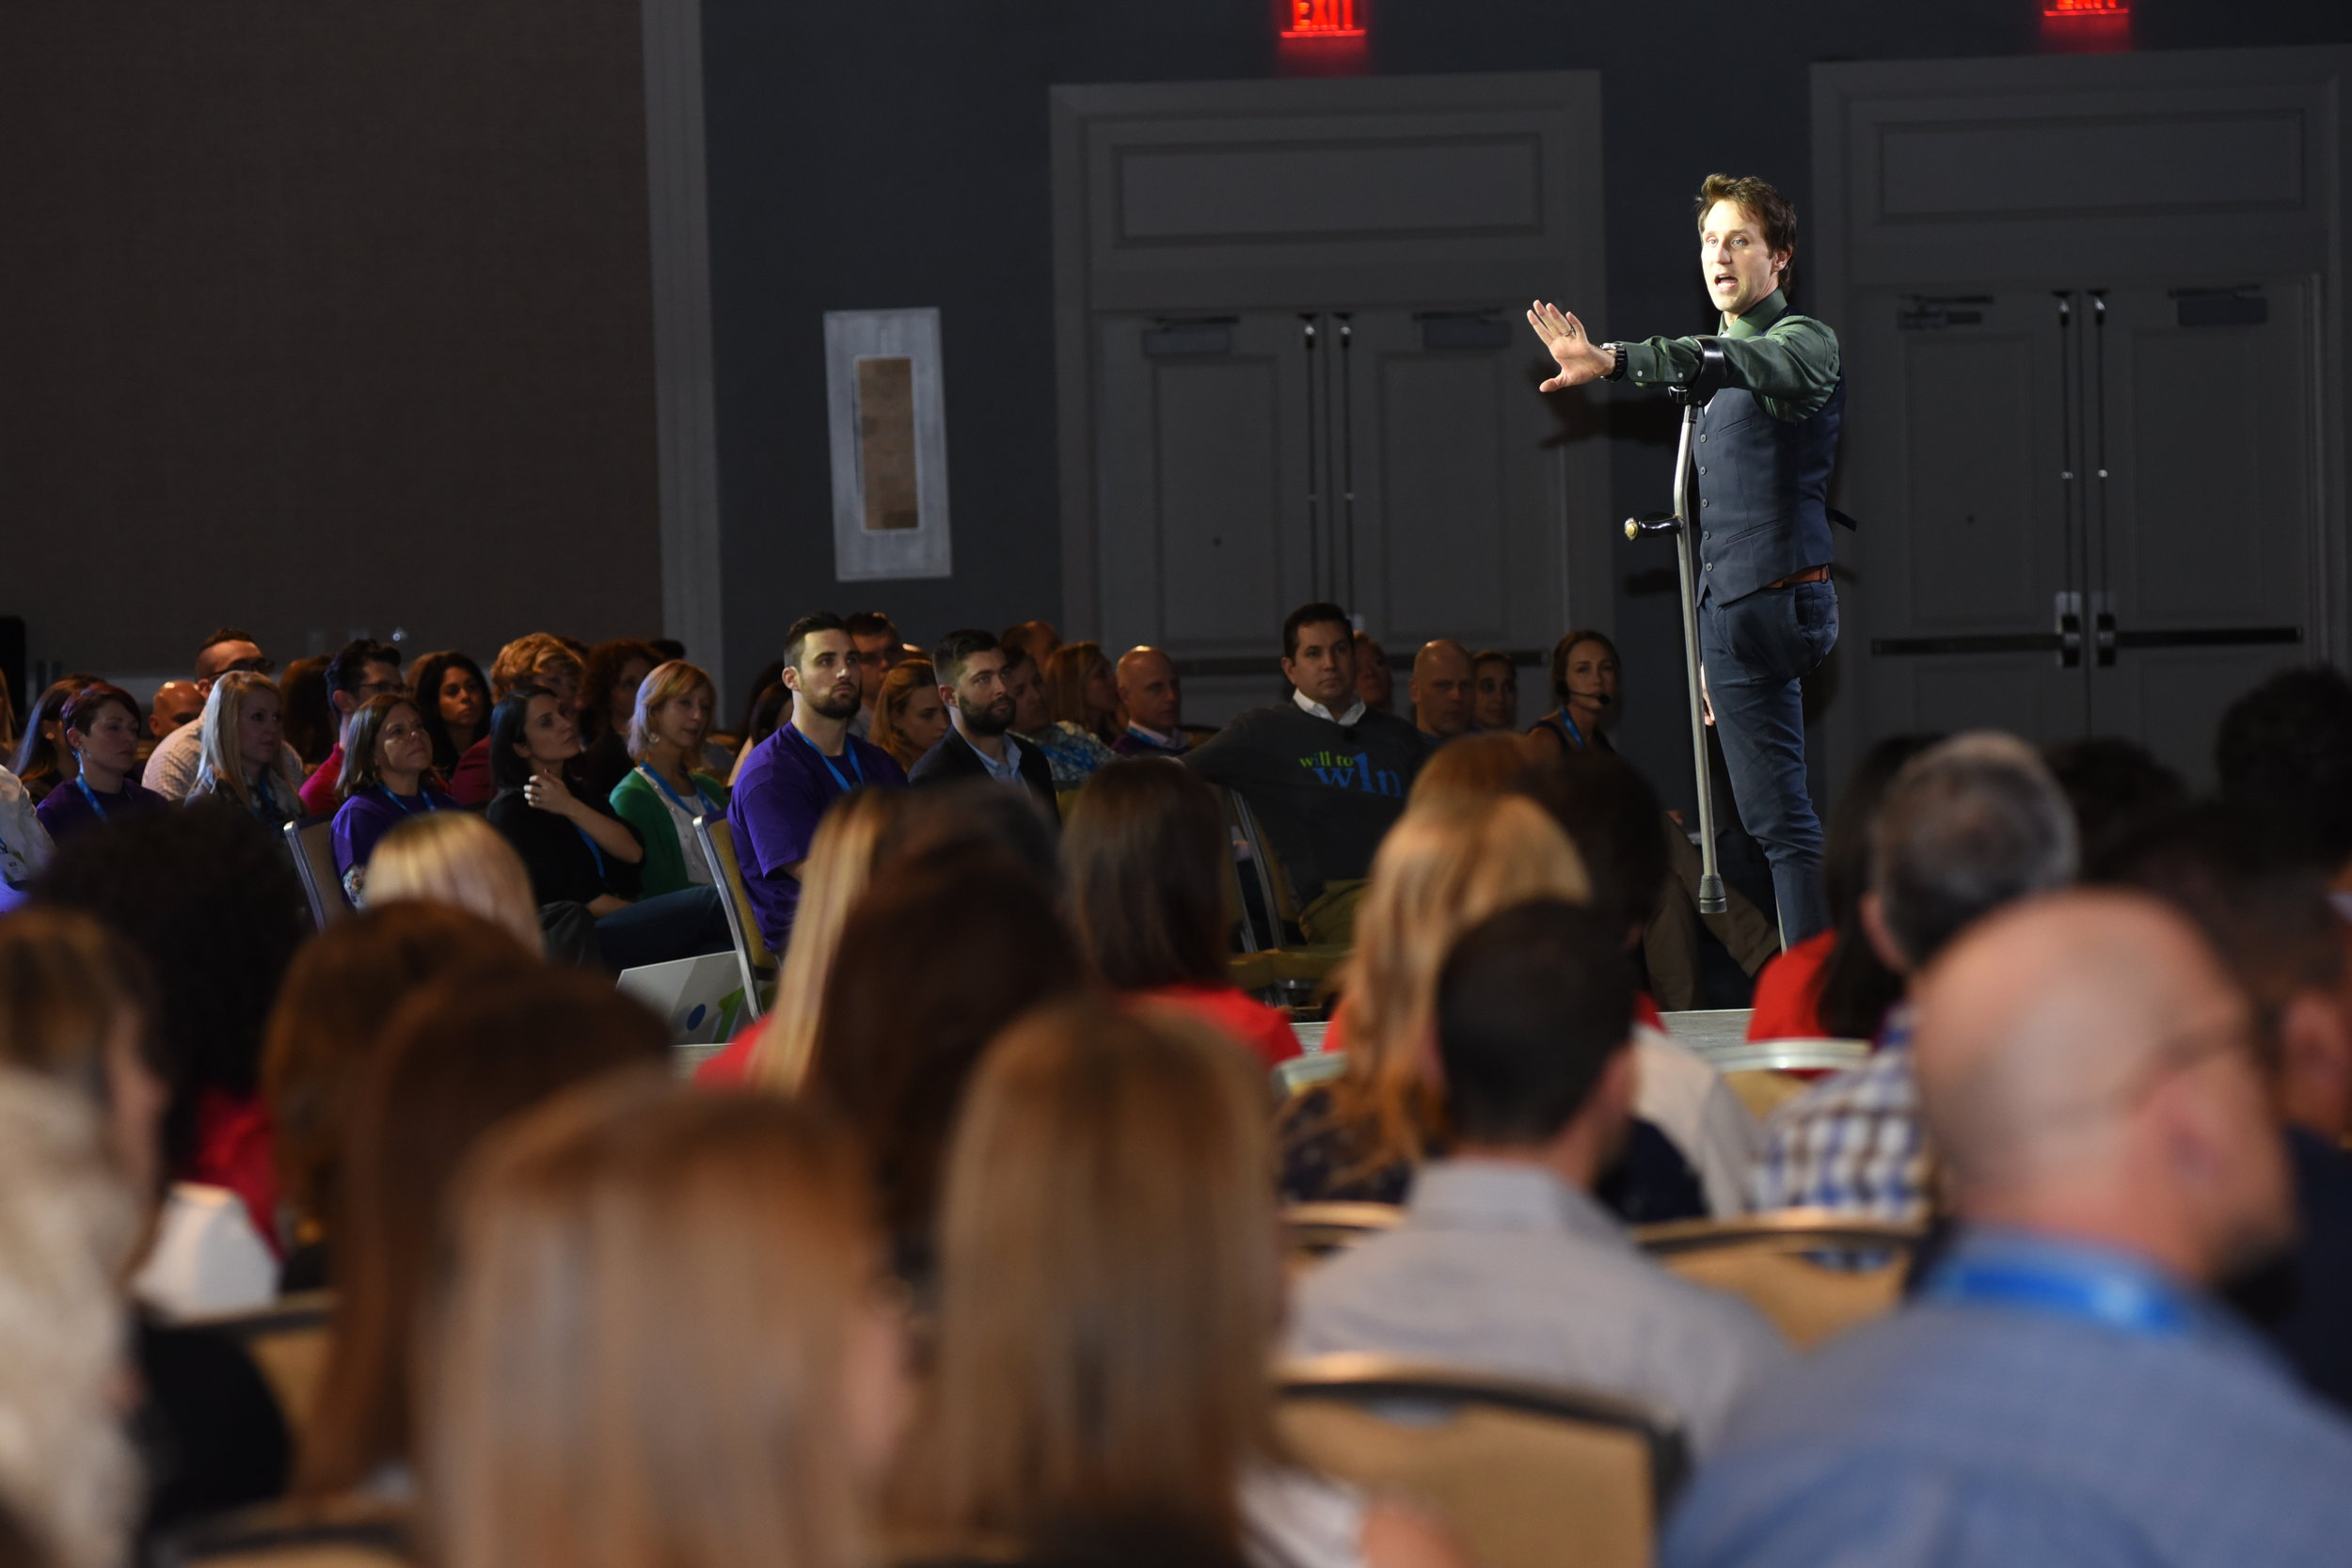 Inspirational speaker Josh Sundquist stands in the center of an audience, gesturing